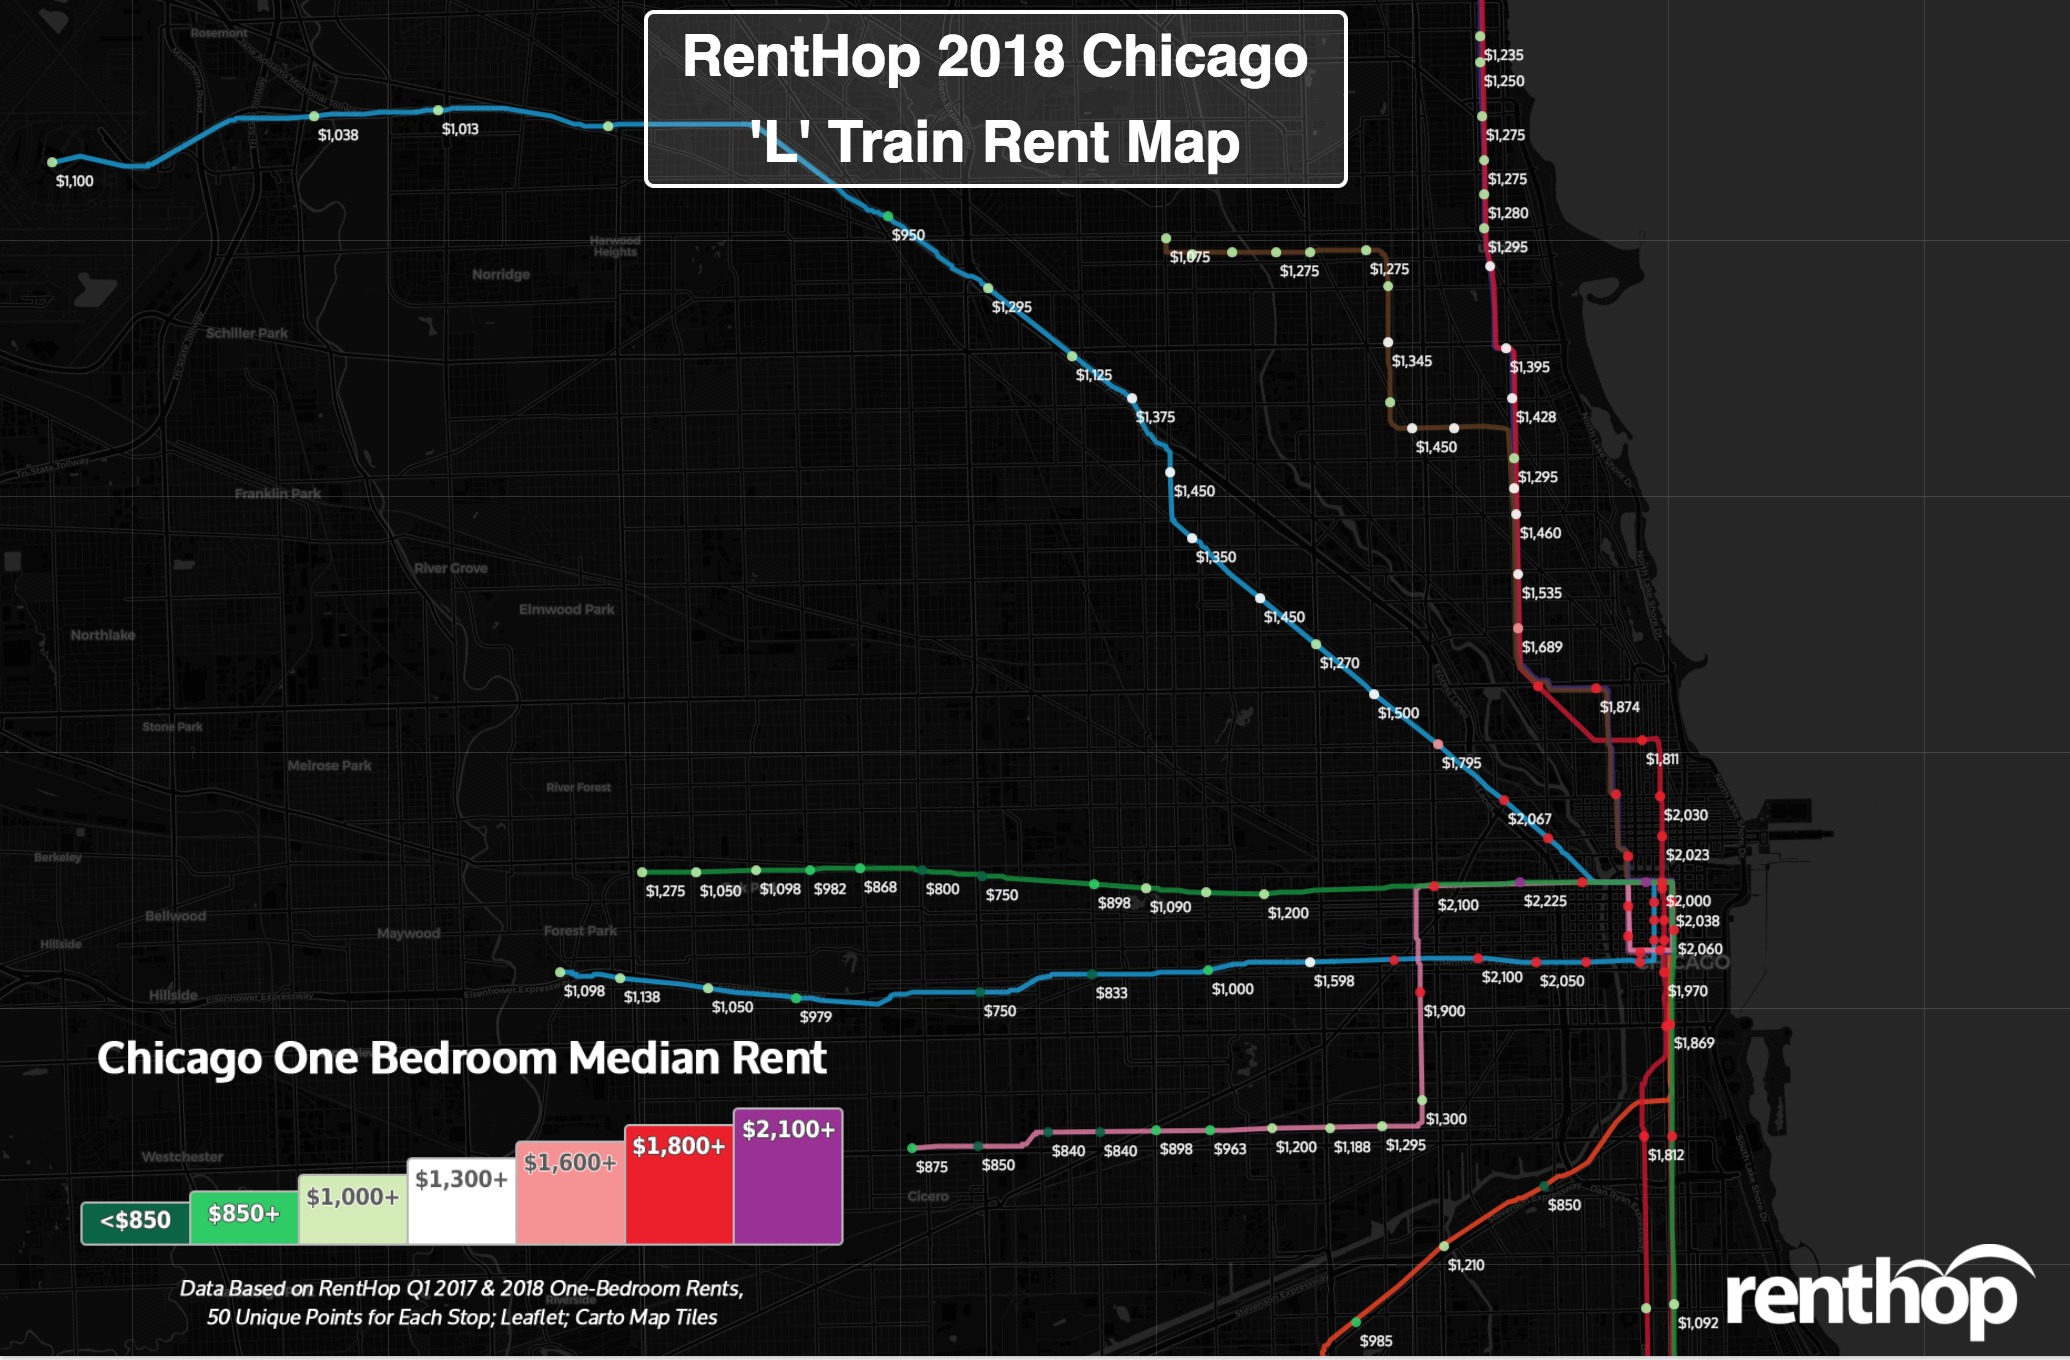 chicago-map-image